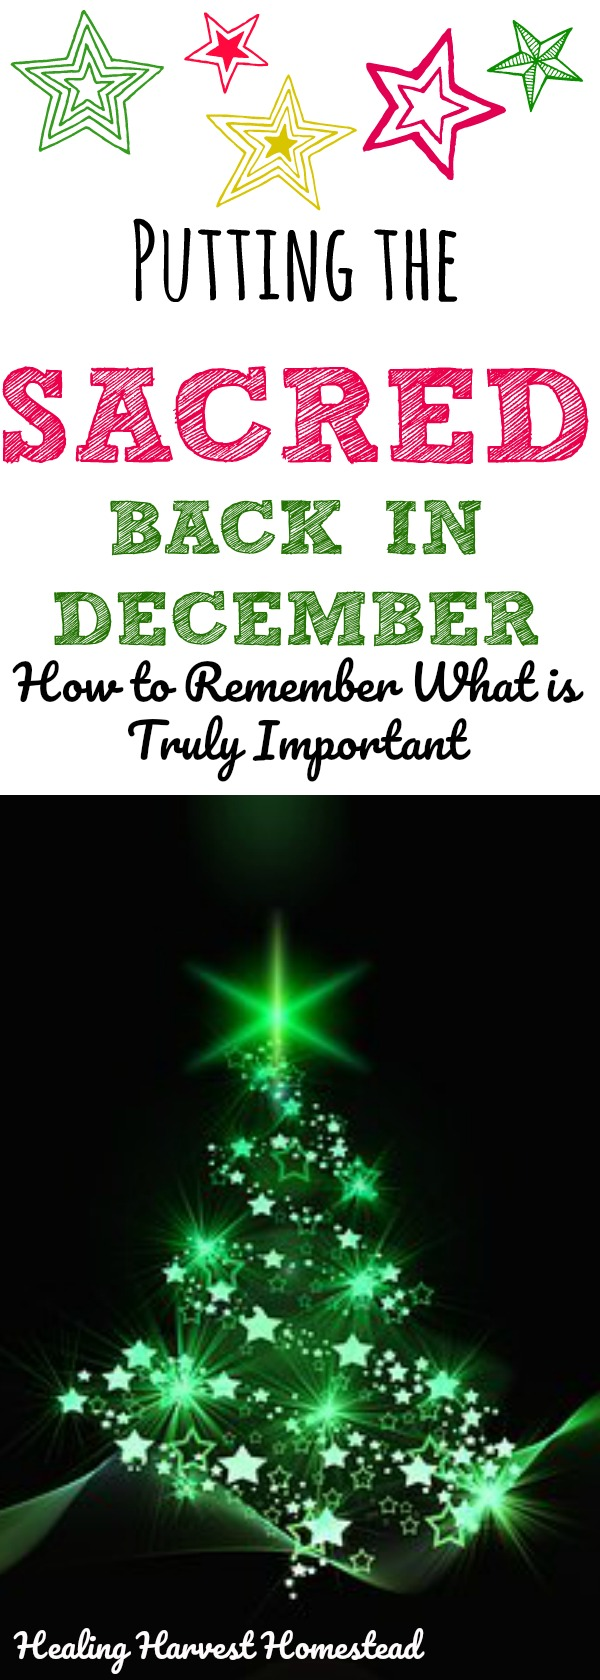 Do you feel overwhelmed during the holidays? Are you finding you actually dislike the month of December because of the crazy busy-ness? Here is a great way to STOP feeling stressed and bad about December's commercial vibe. Remind yourself what is REALLY important about the season. How to put the sacred back in December. How to remember what is truly important.